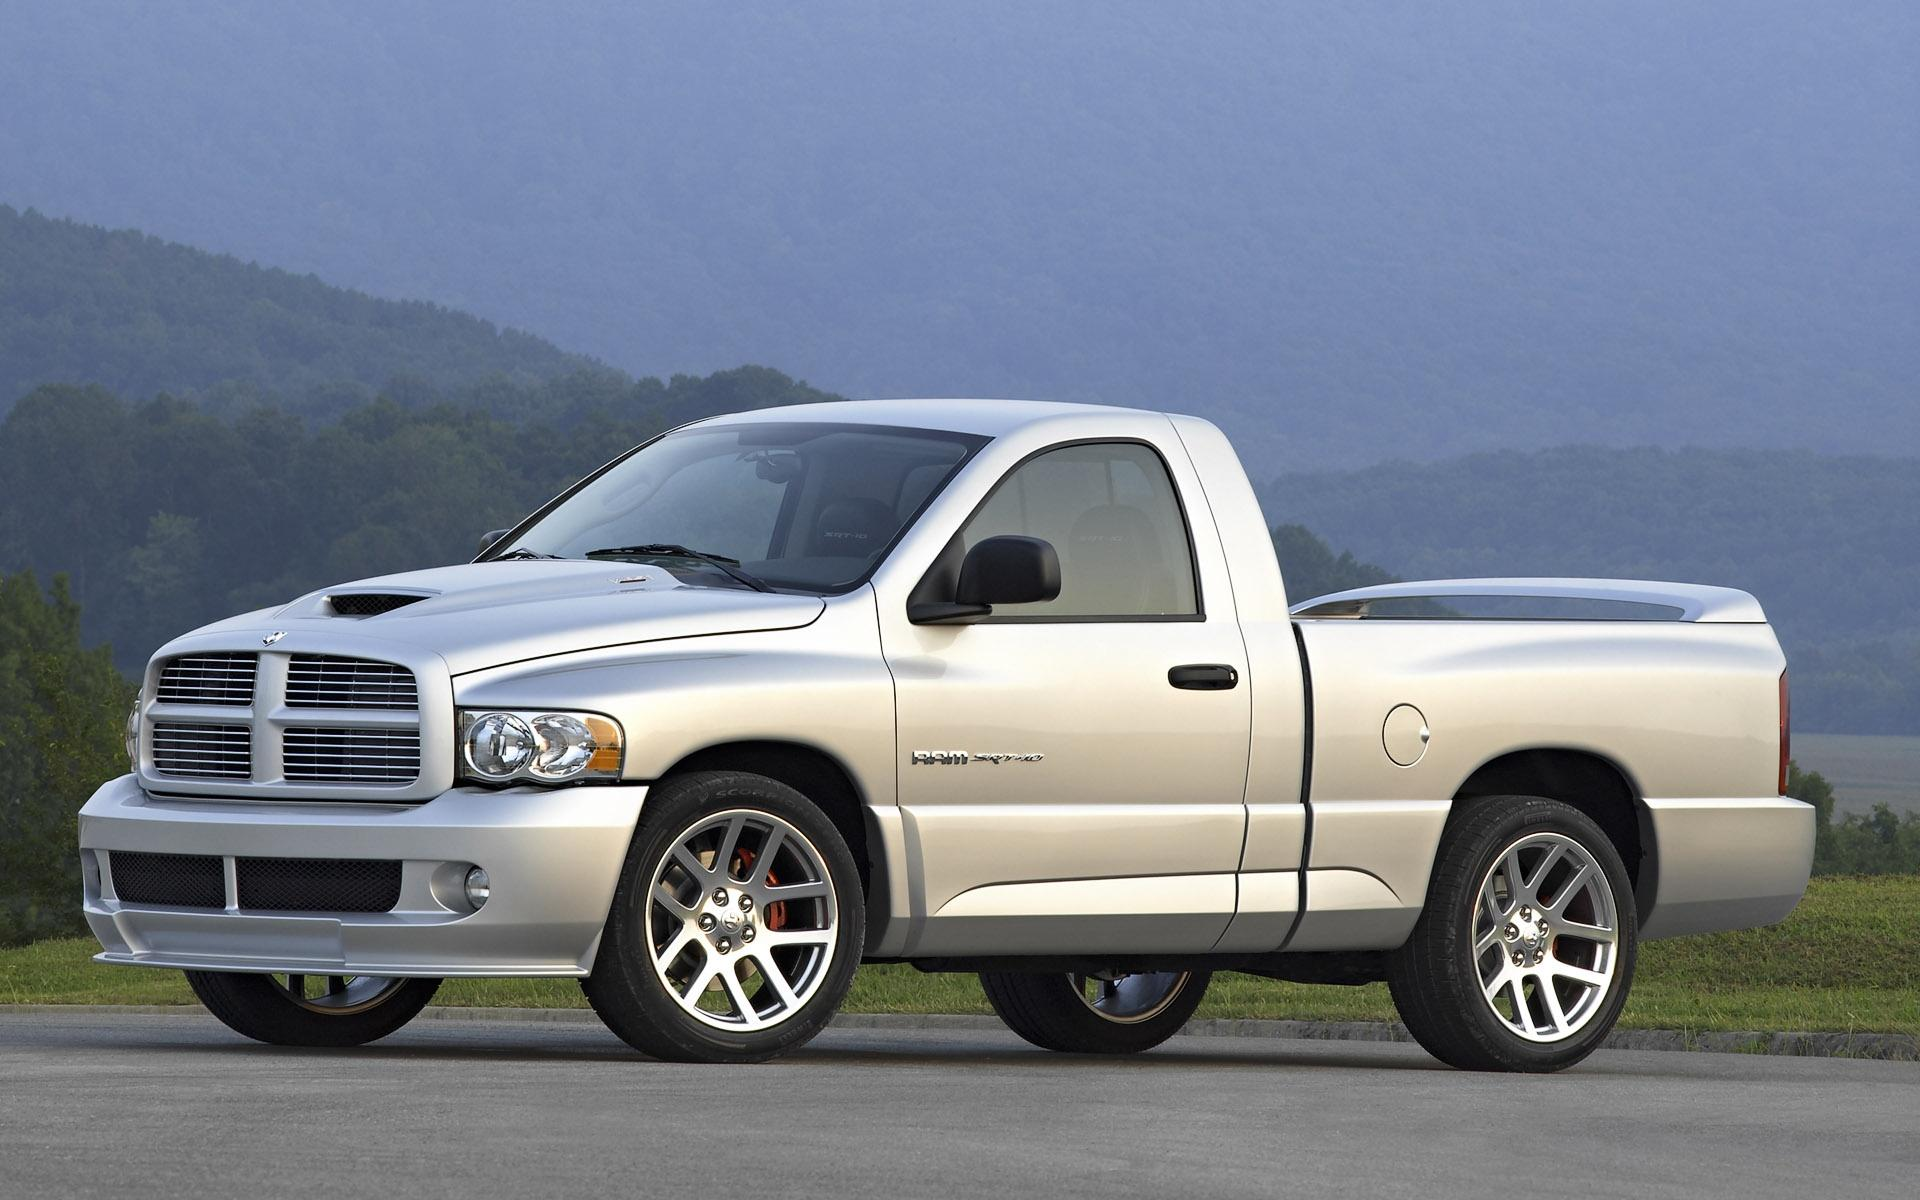 2004 Dodge Ram Srt 10 Side Angle 1920x1200